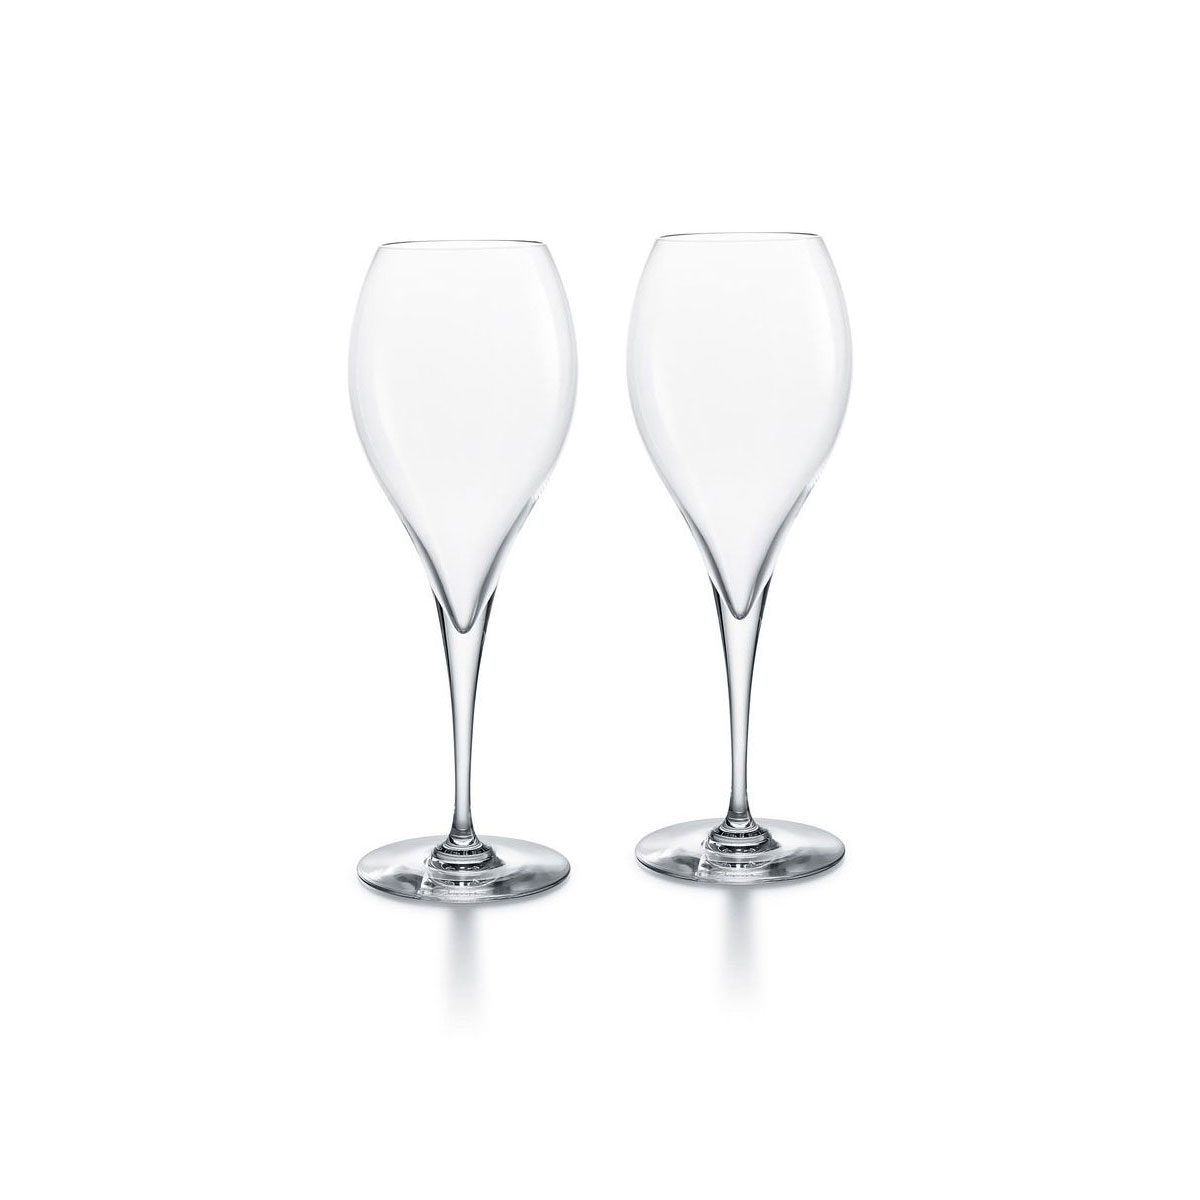 Baccarat Crystal Oenologie Champagne Flute Glasses, Pair